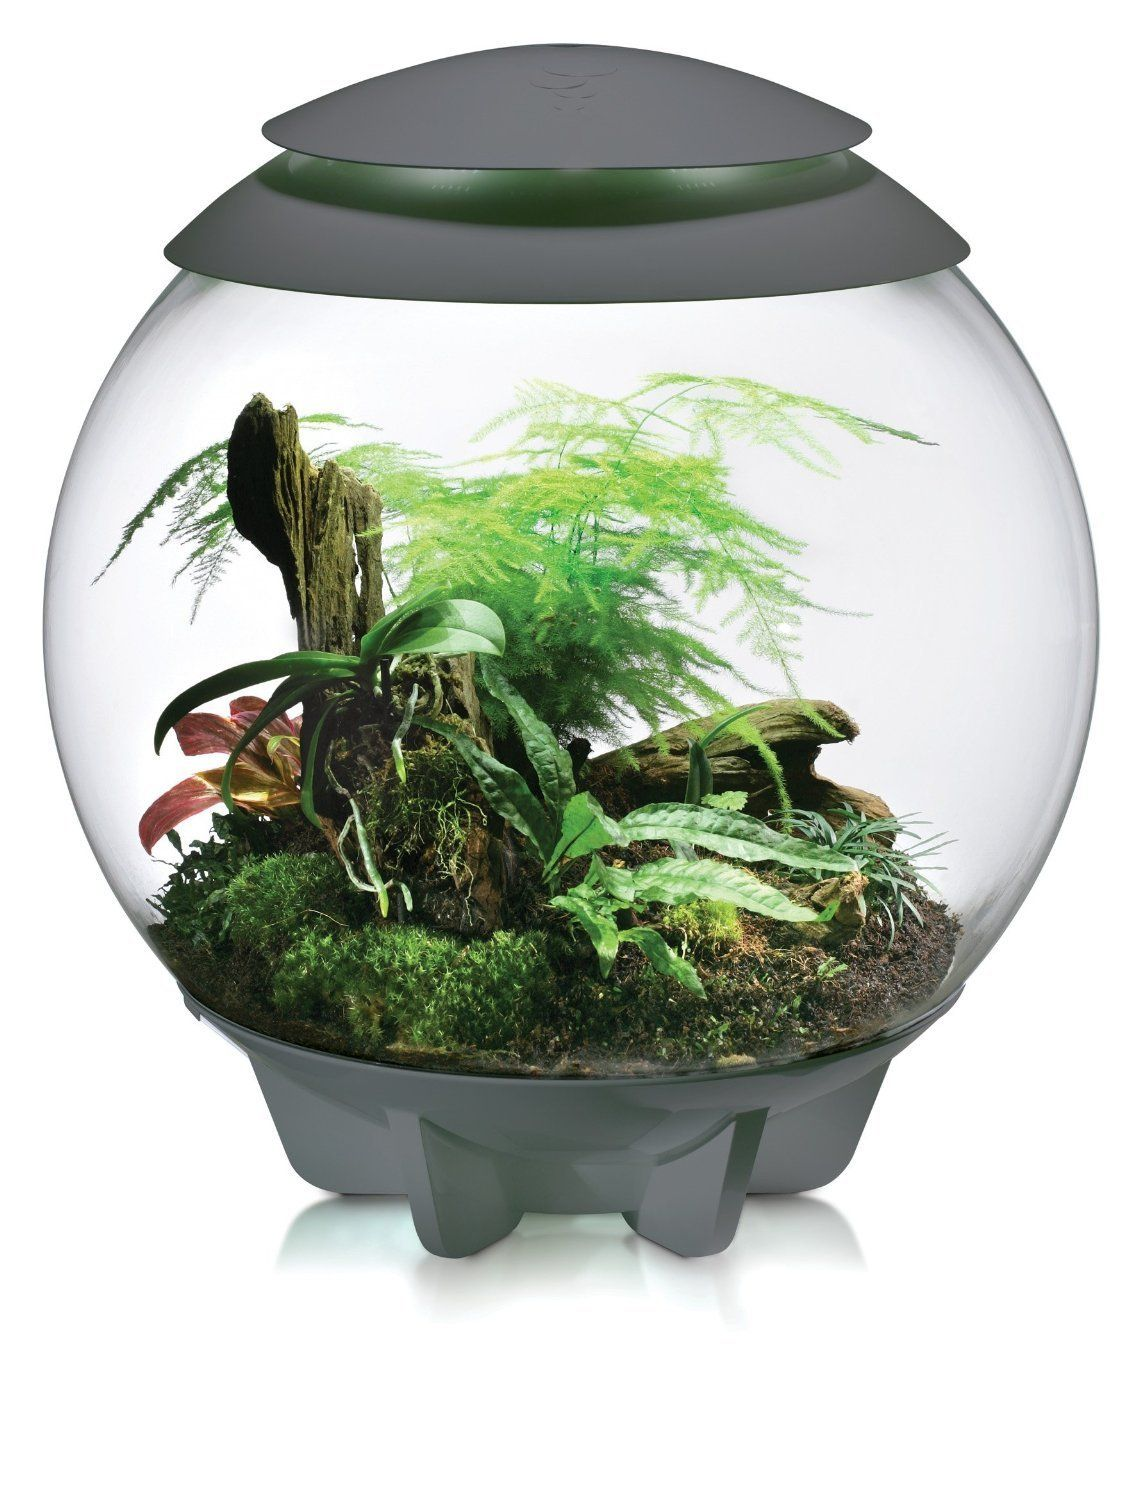 biOrbAIR Terrariums Create SmallScale Bio Domes Biorb